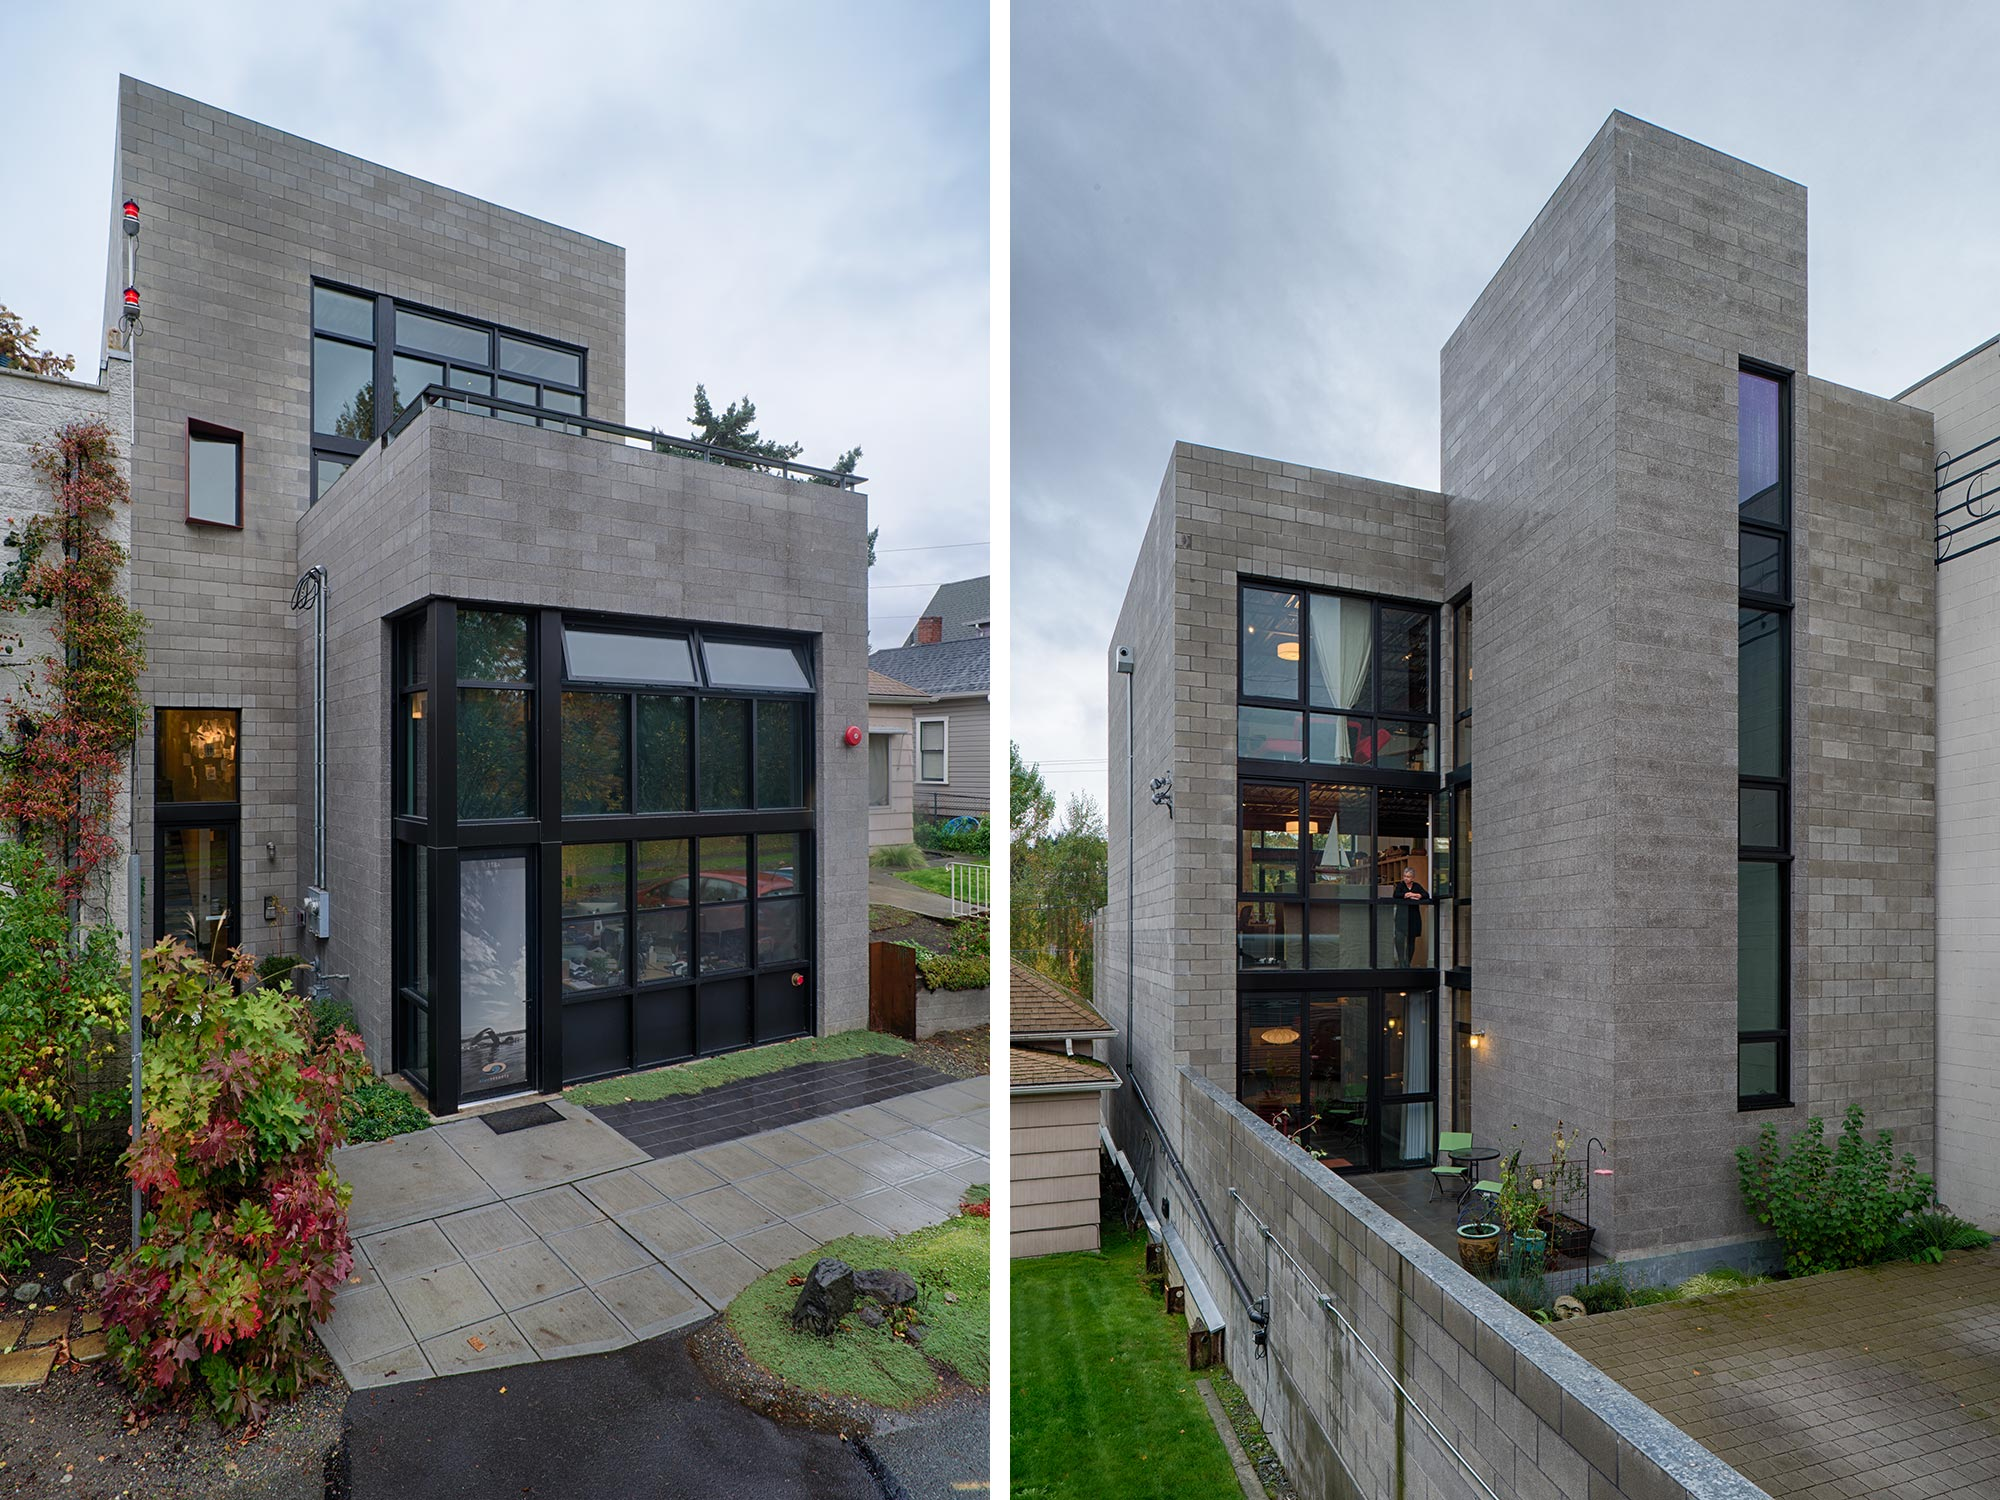 The Canale Studios is an urban, live work project overlooking the Fremont Ship Canal.